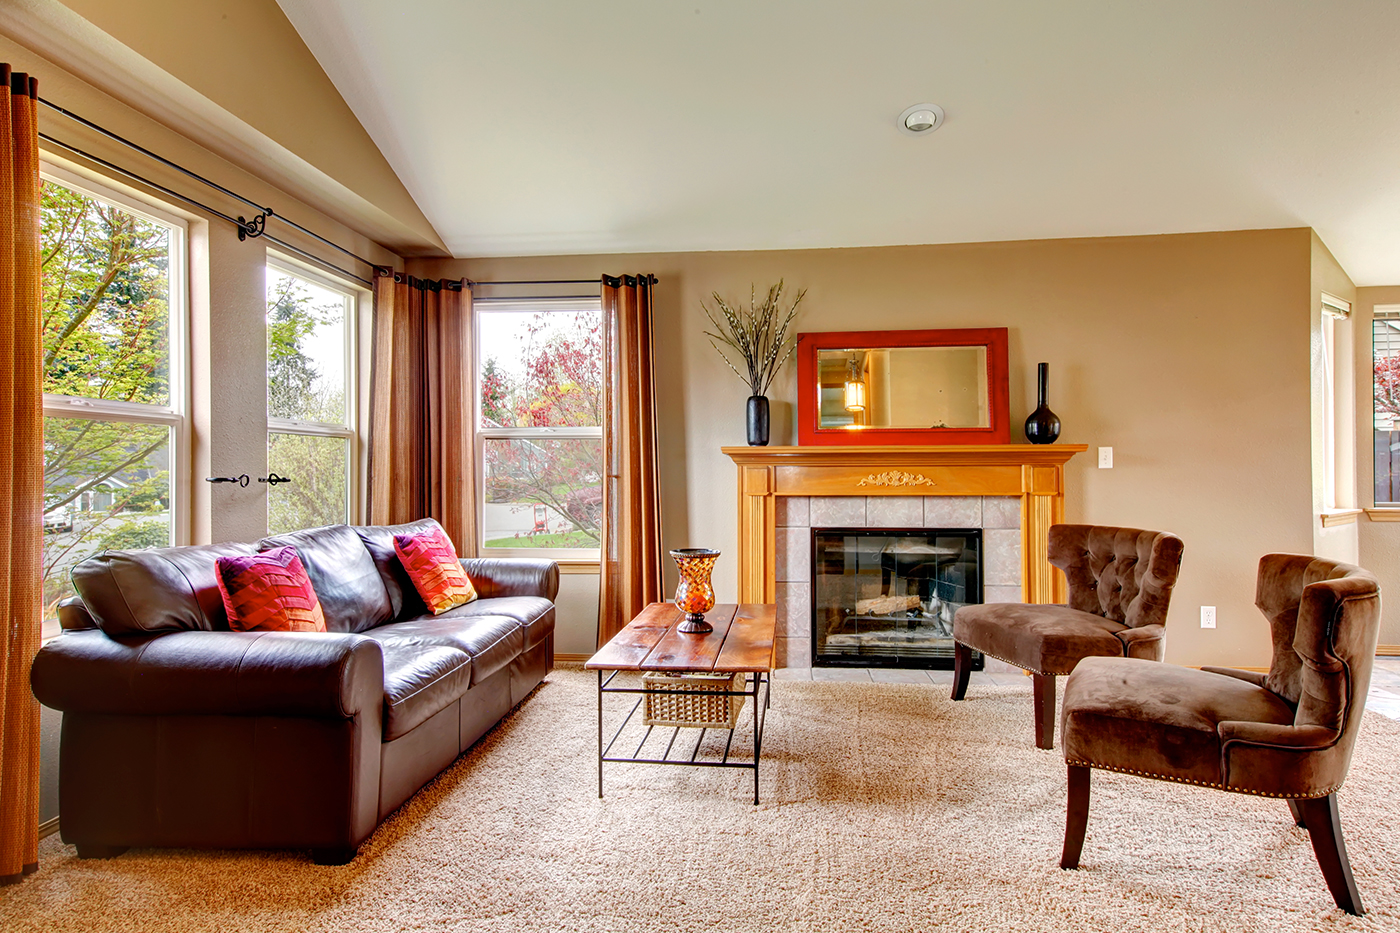 Spruce Up Your Home for Fall - bhgrelife.com